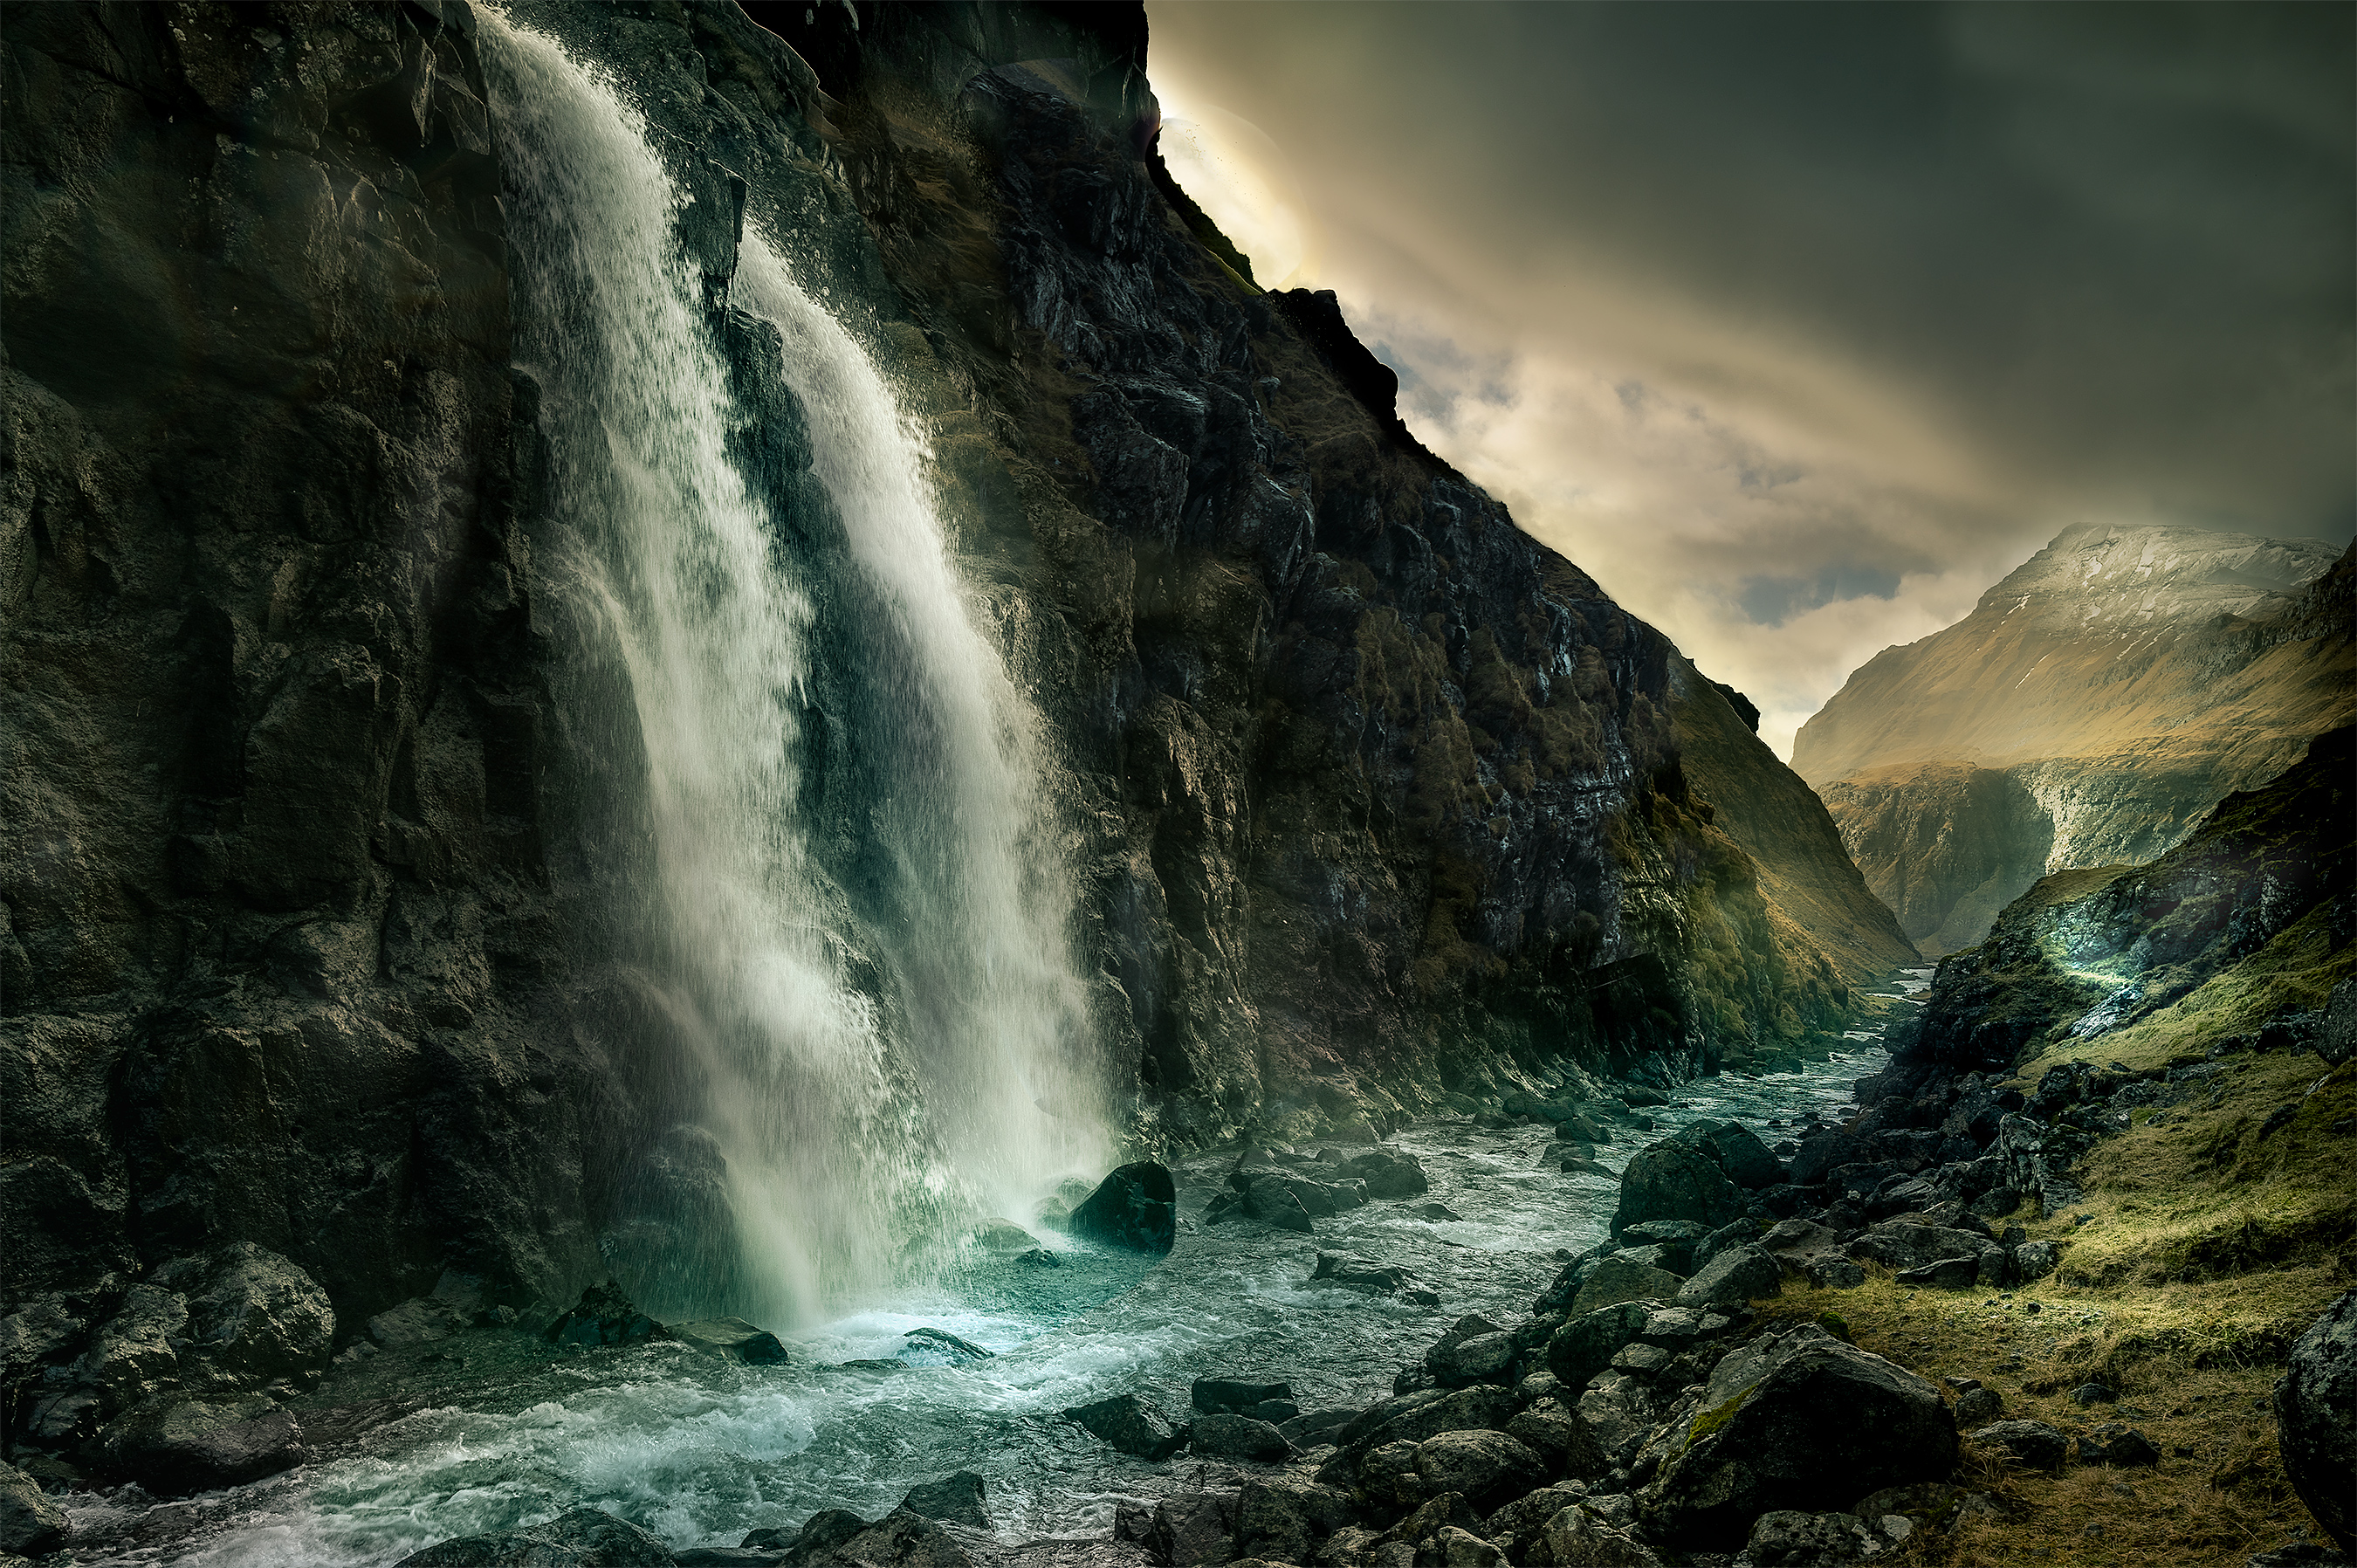 FAroe-Islands--Day-5-Small-waterfall-2700i